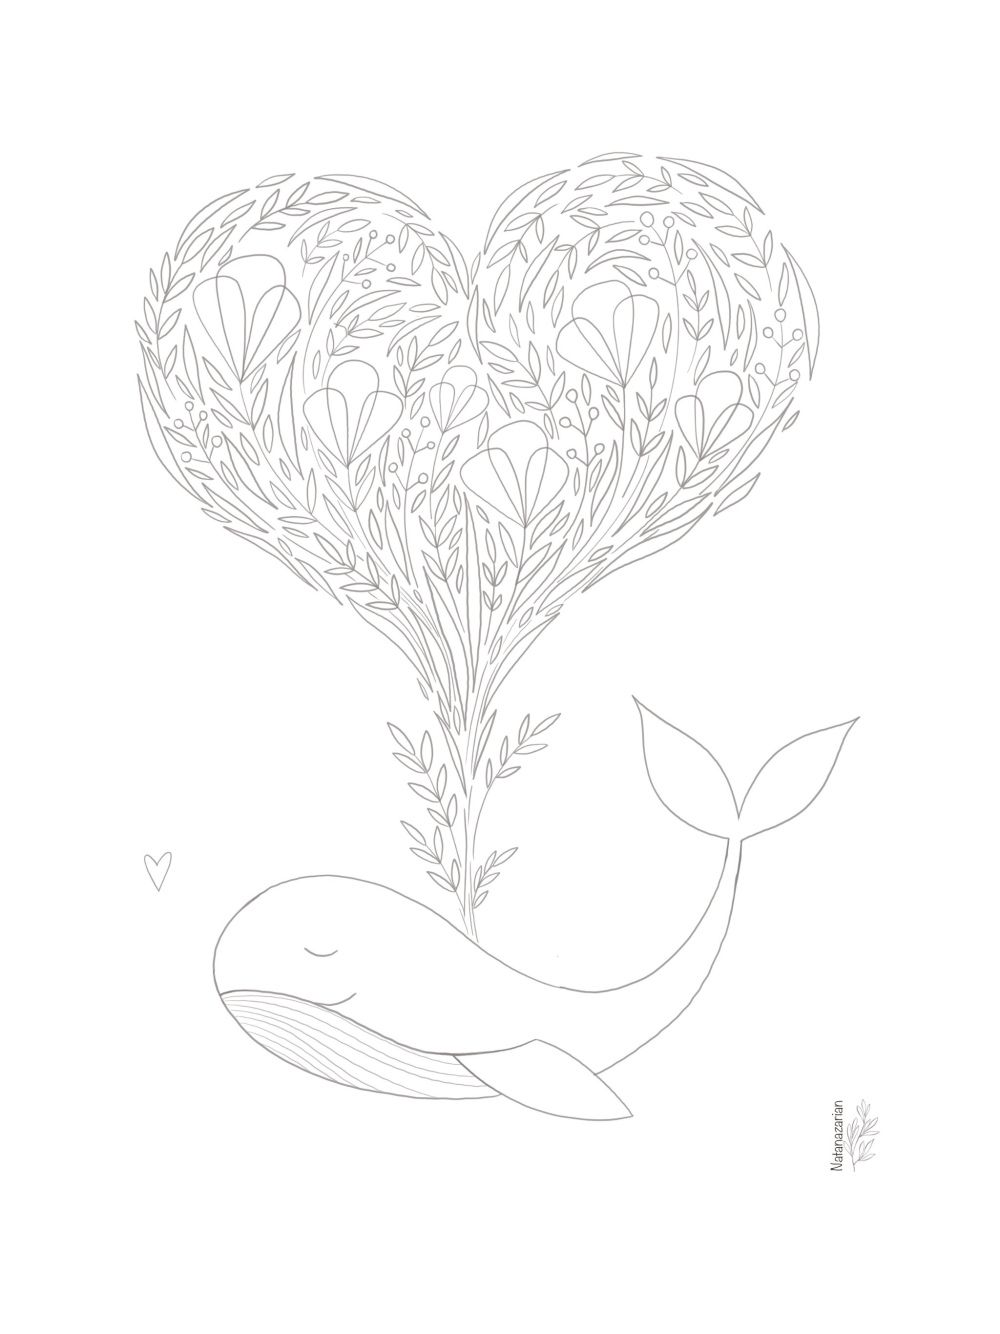 Whale In Love Free Coloring Page Free Coloring Pages Whale Coloring Pages Love Is Free